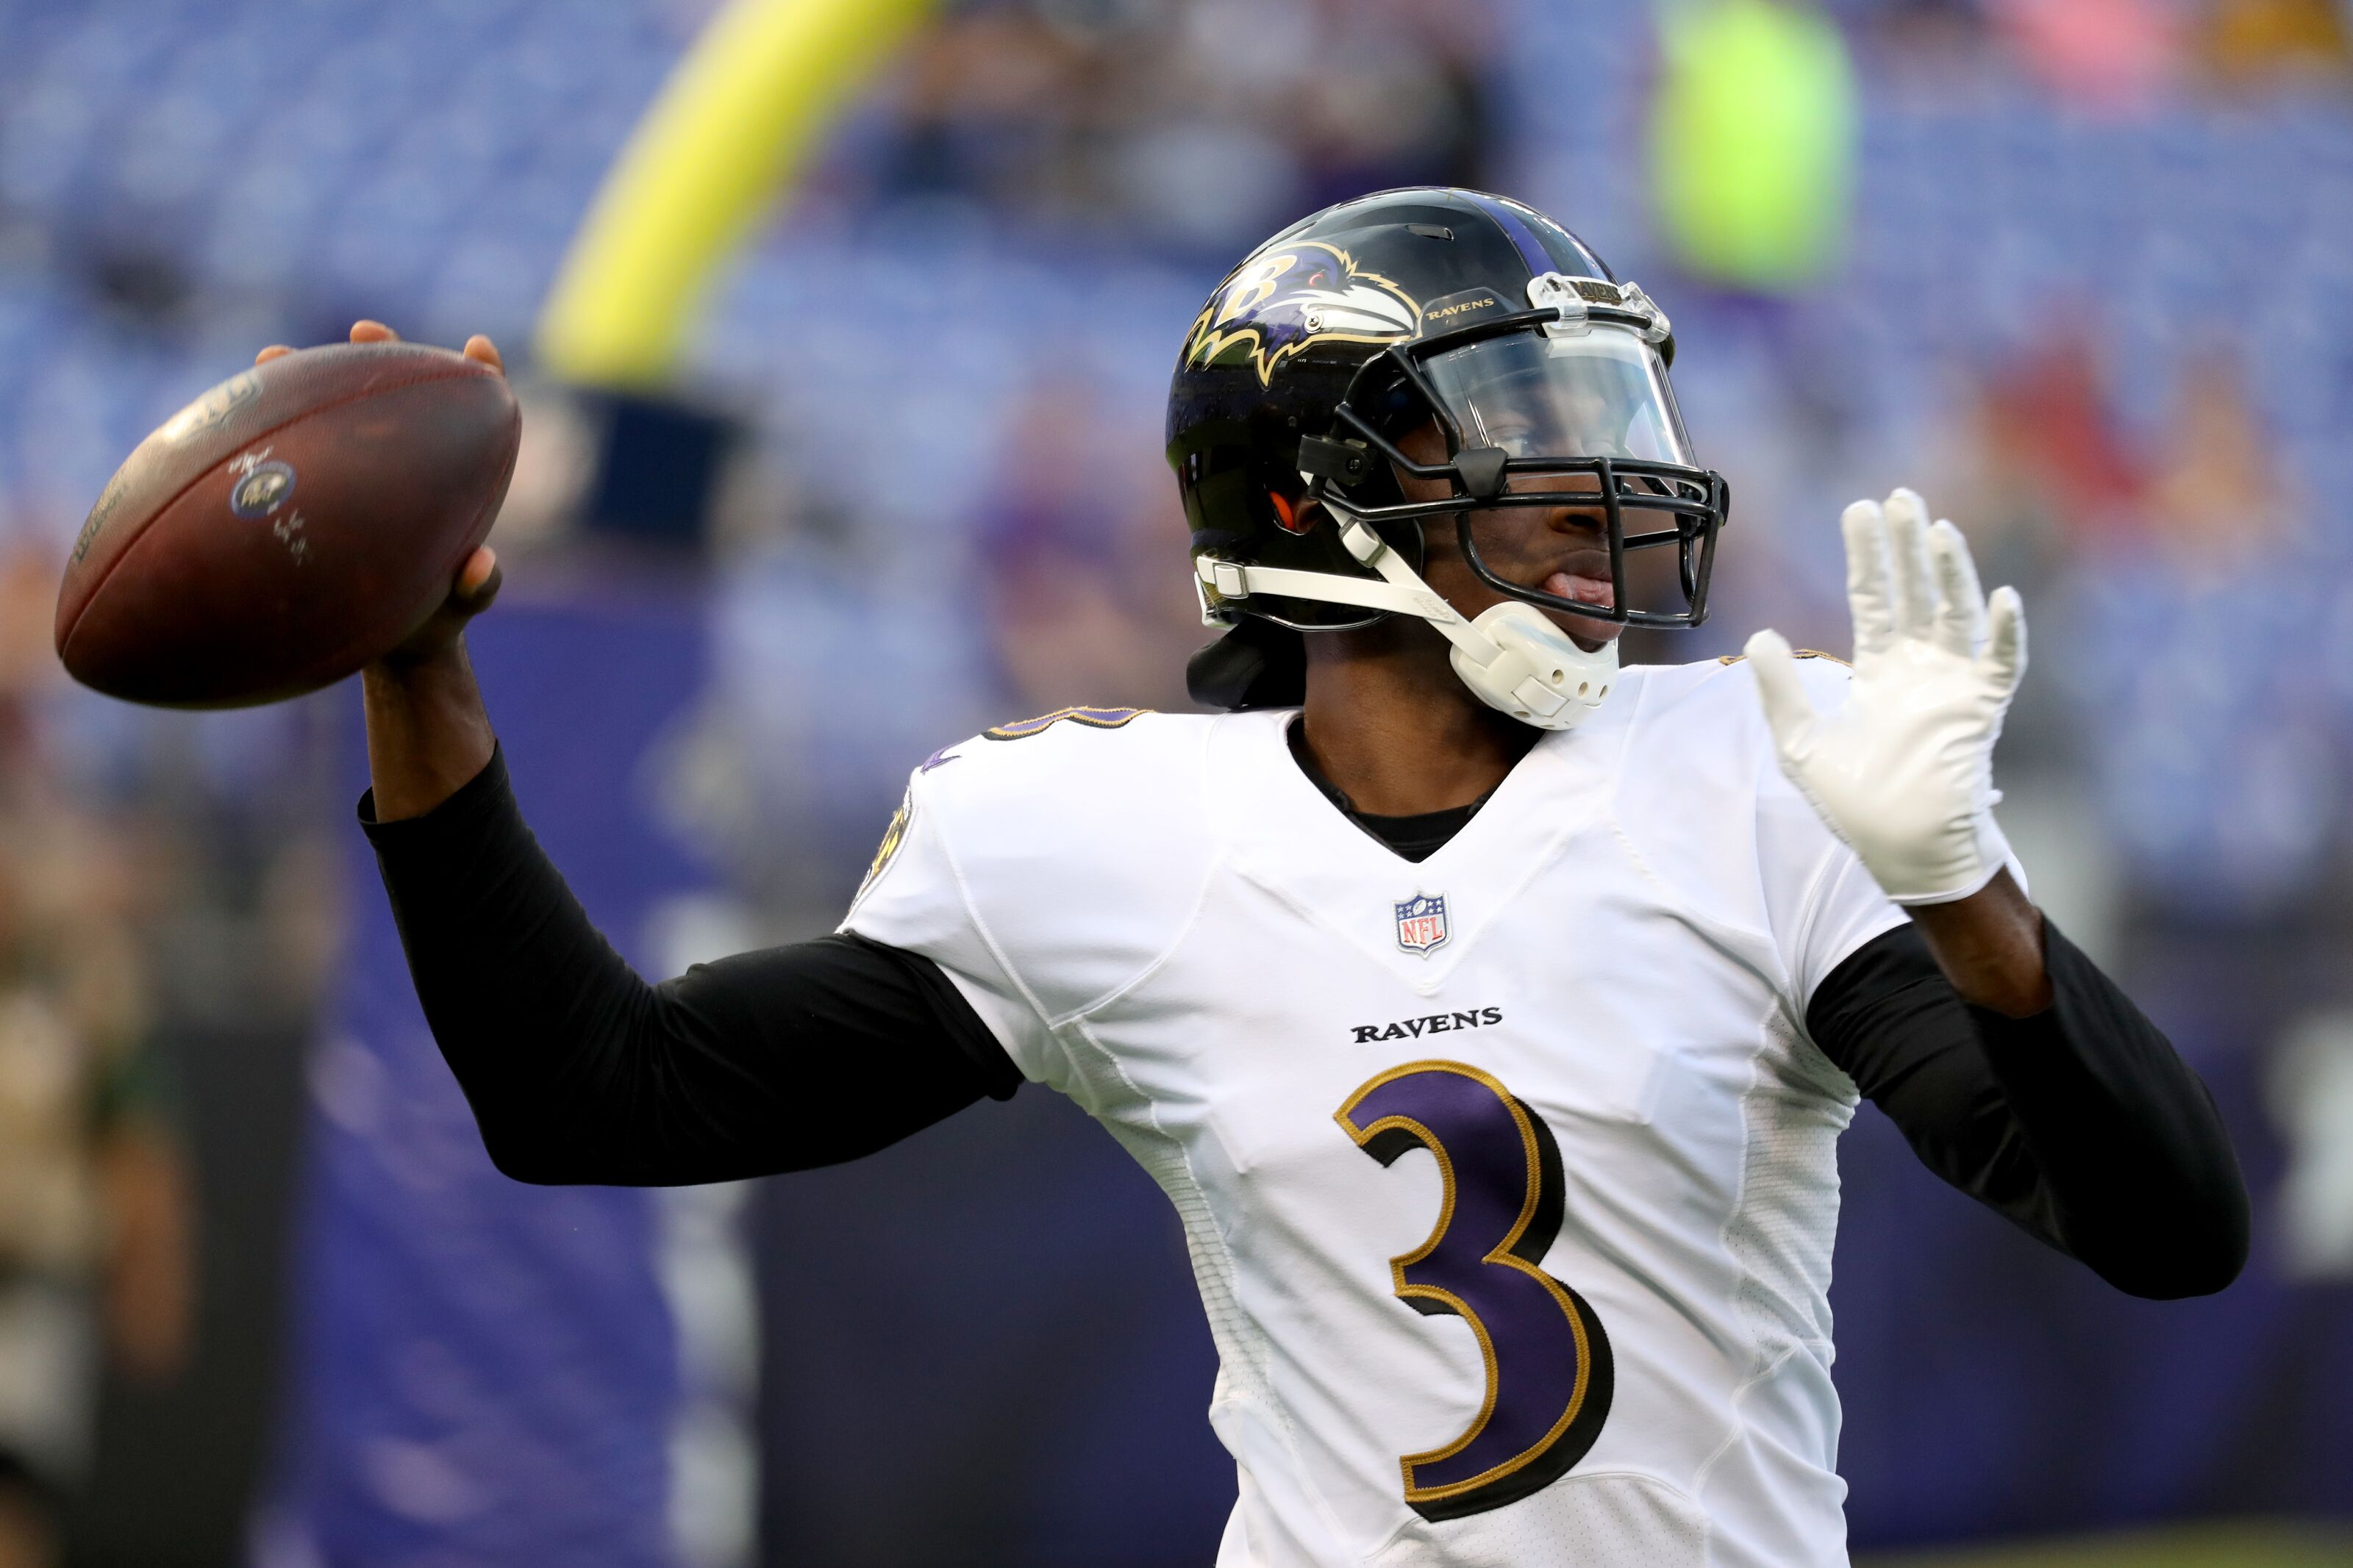 Jaguars should have chosen Robert Griffin III over Nick Foles